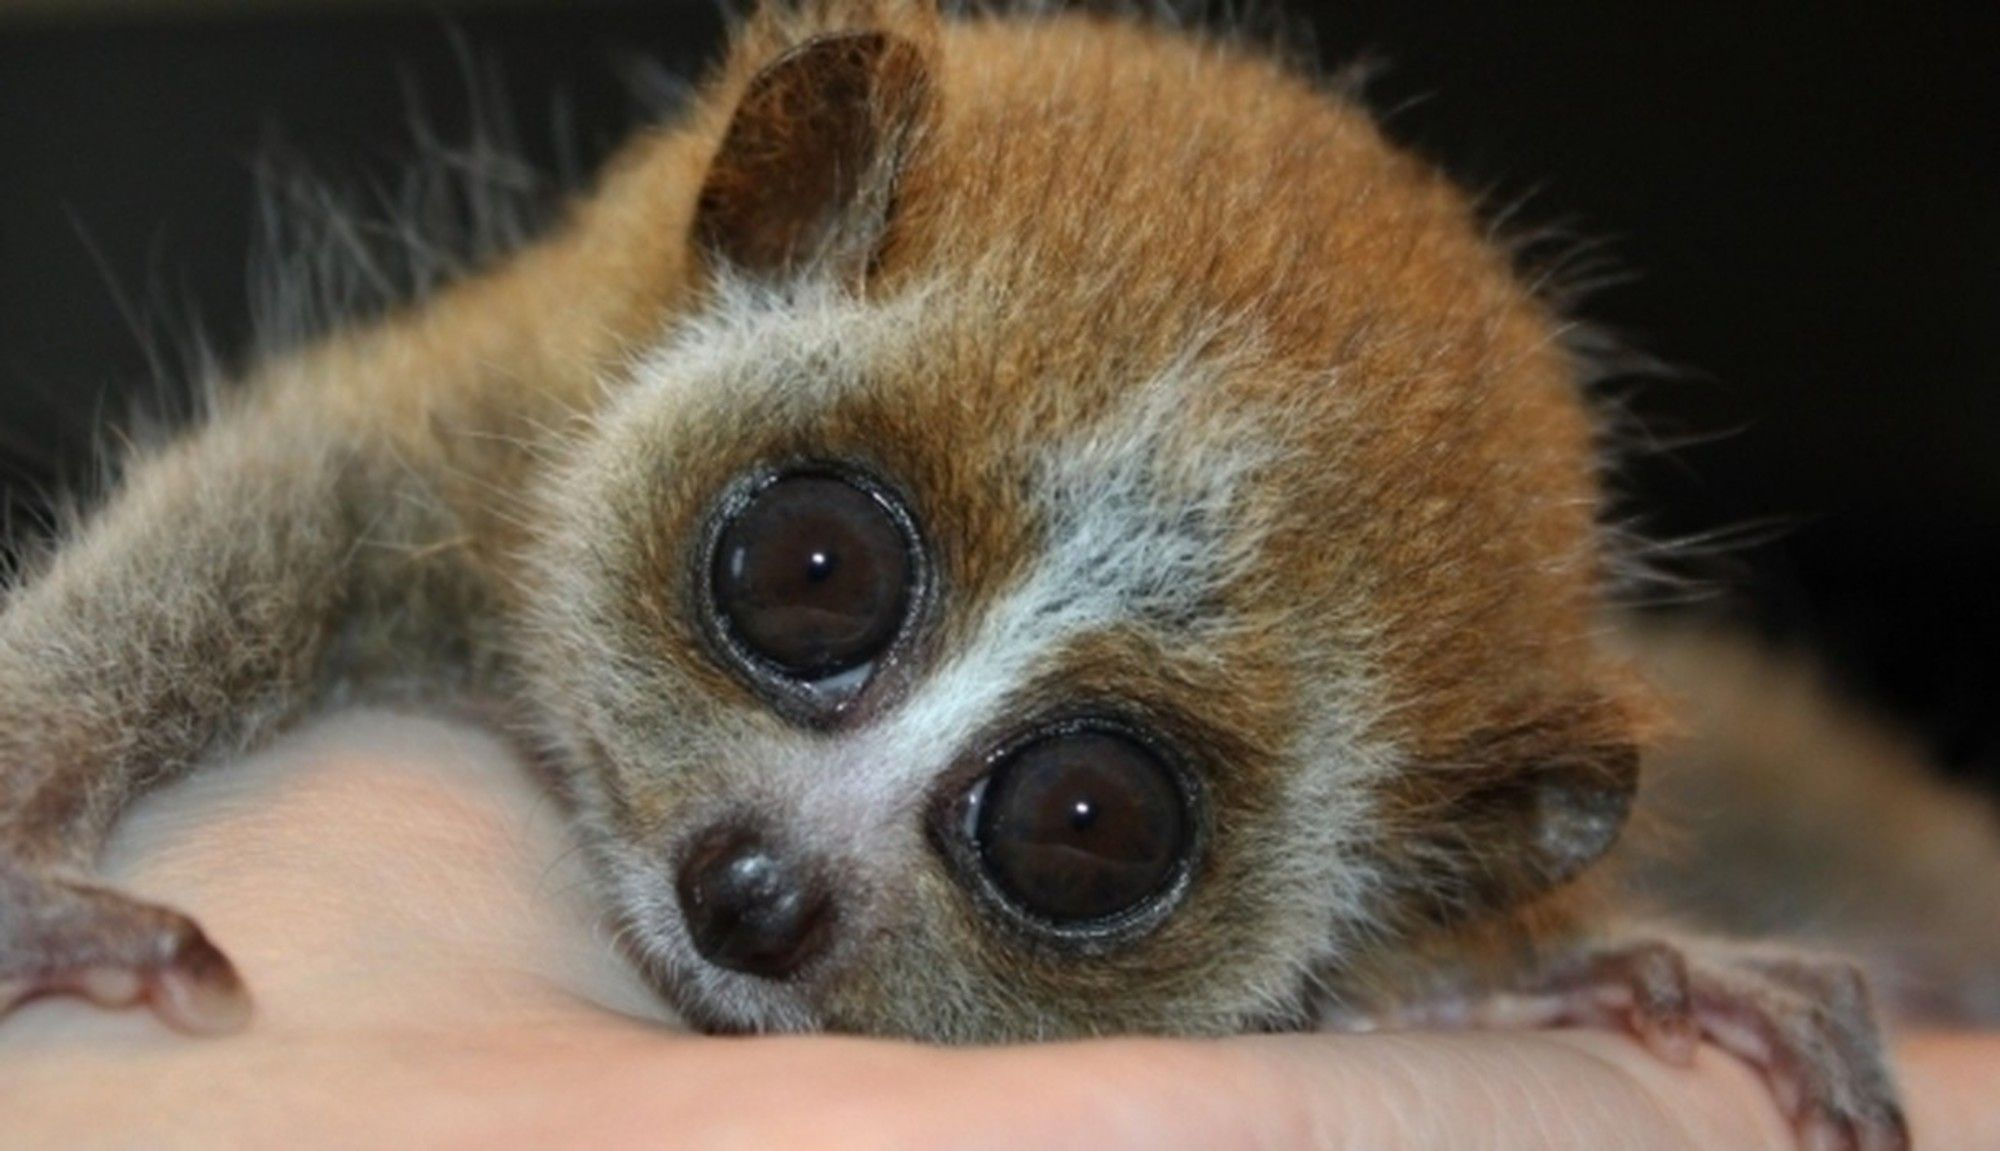 That Cute Loris Tickle Video Is Hiding An Awful Crime